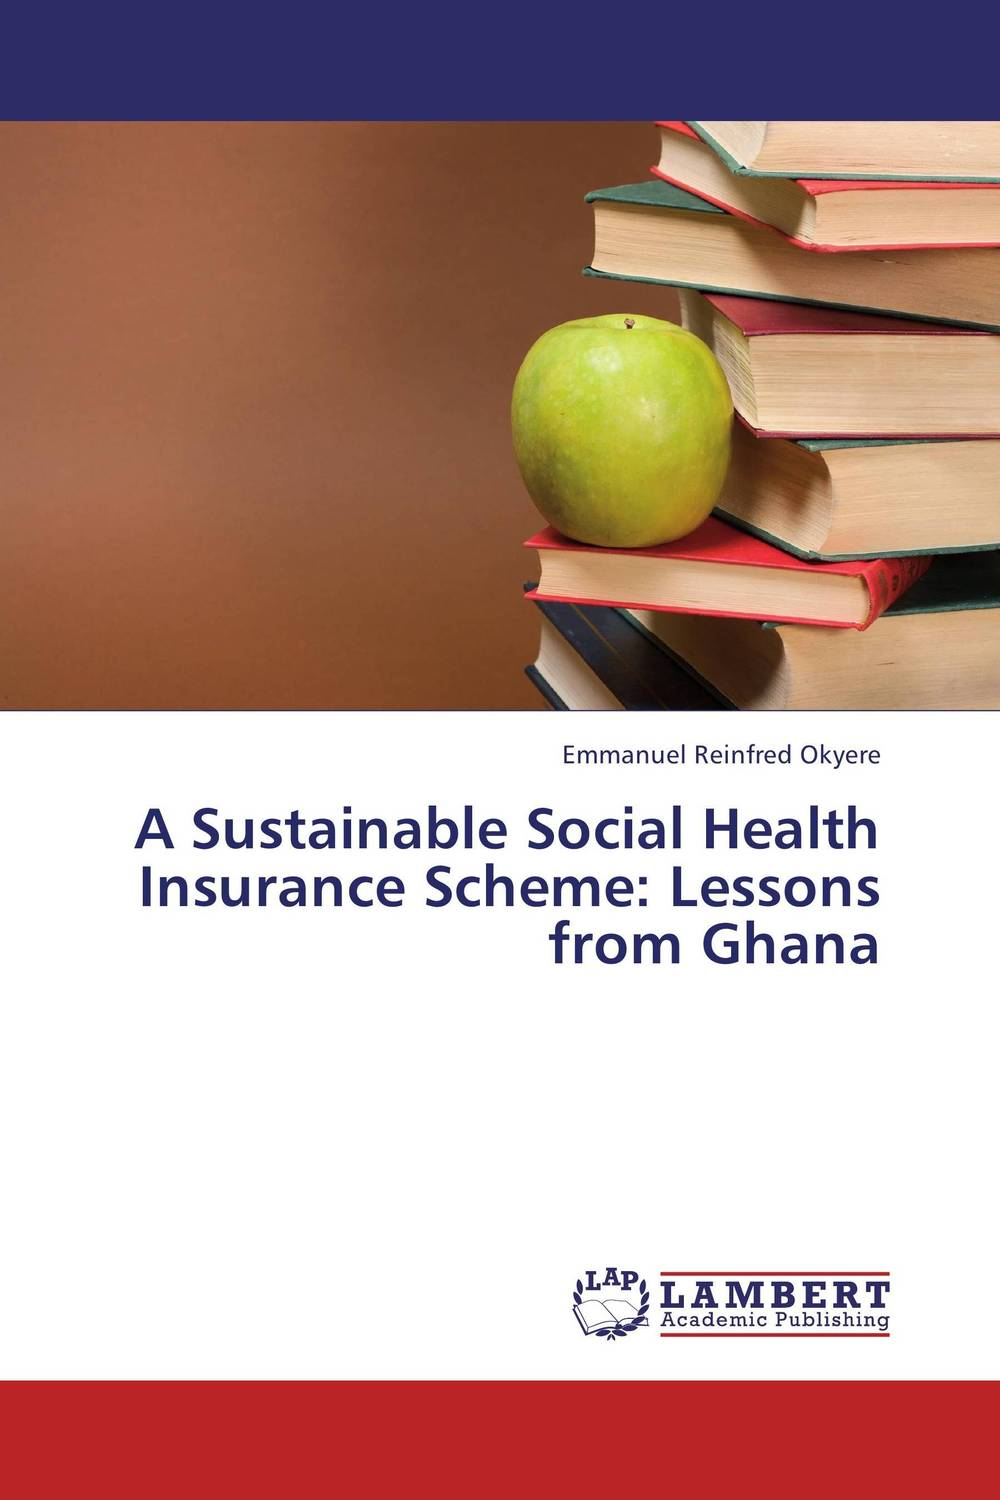 A Sustainable Social Health Insurance Scheme: Lessons from Ghana cayo garcia social sustainable sugarcane for bioethanol in peru